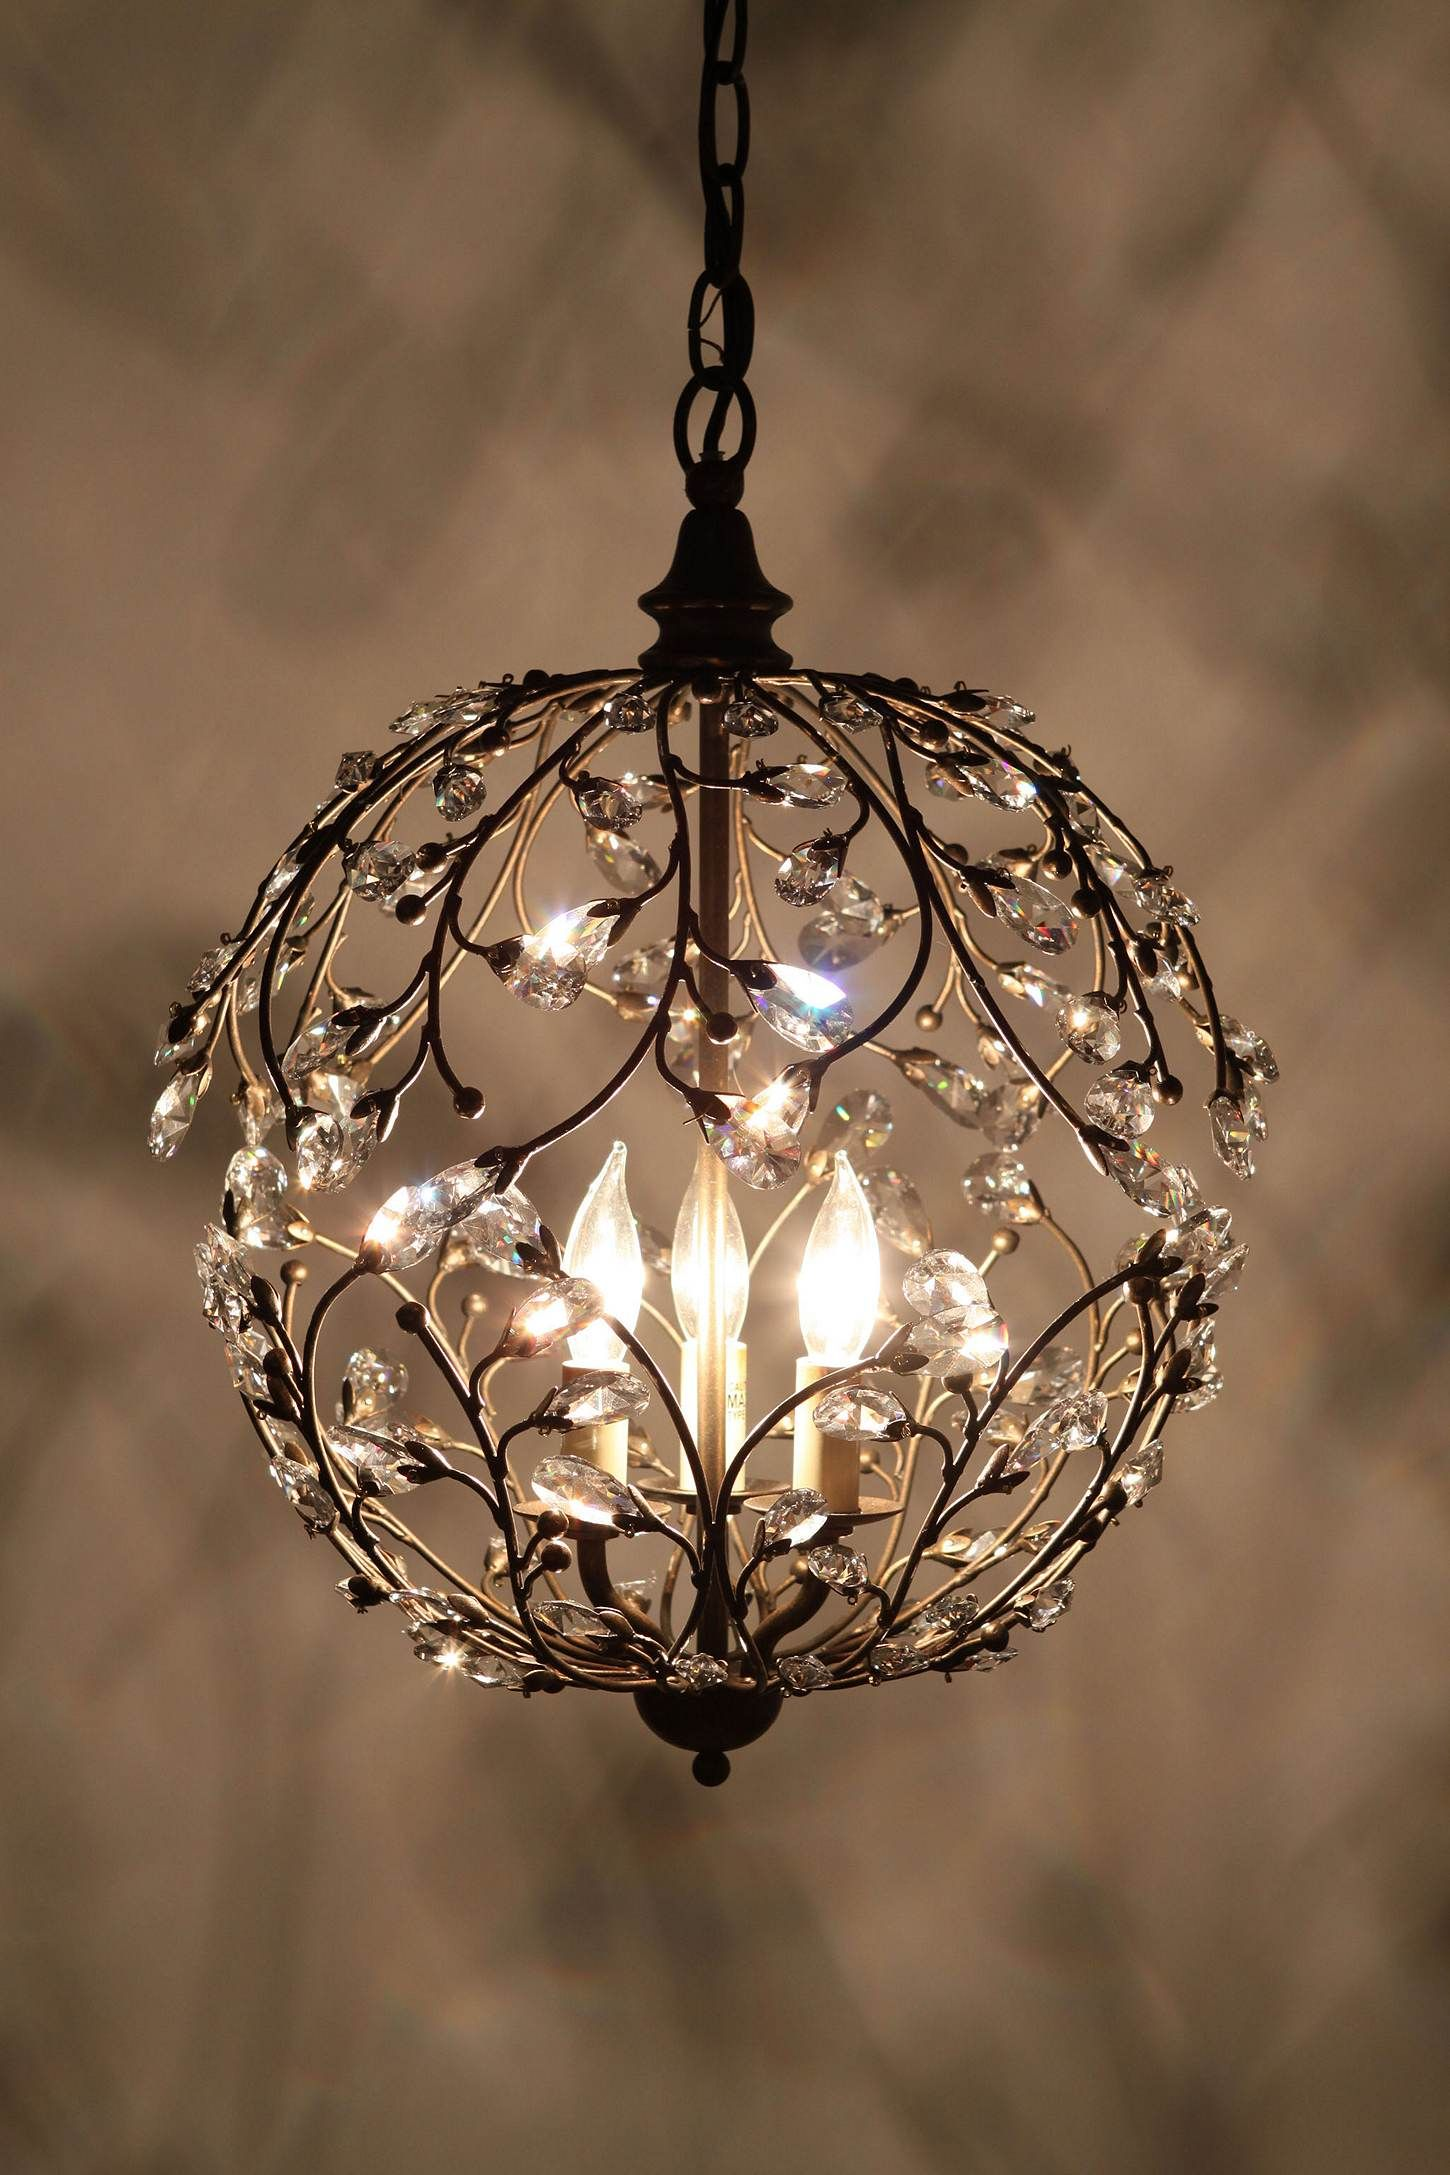 Small Simple Chandelier If I Were Rich I D Put That Over My Massive Copper Tub For The